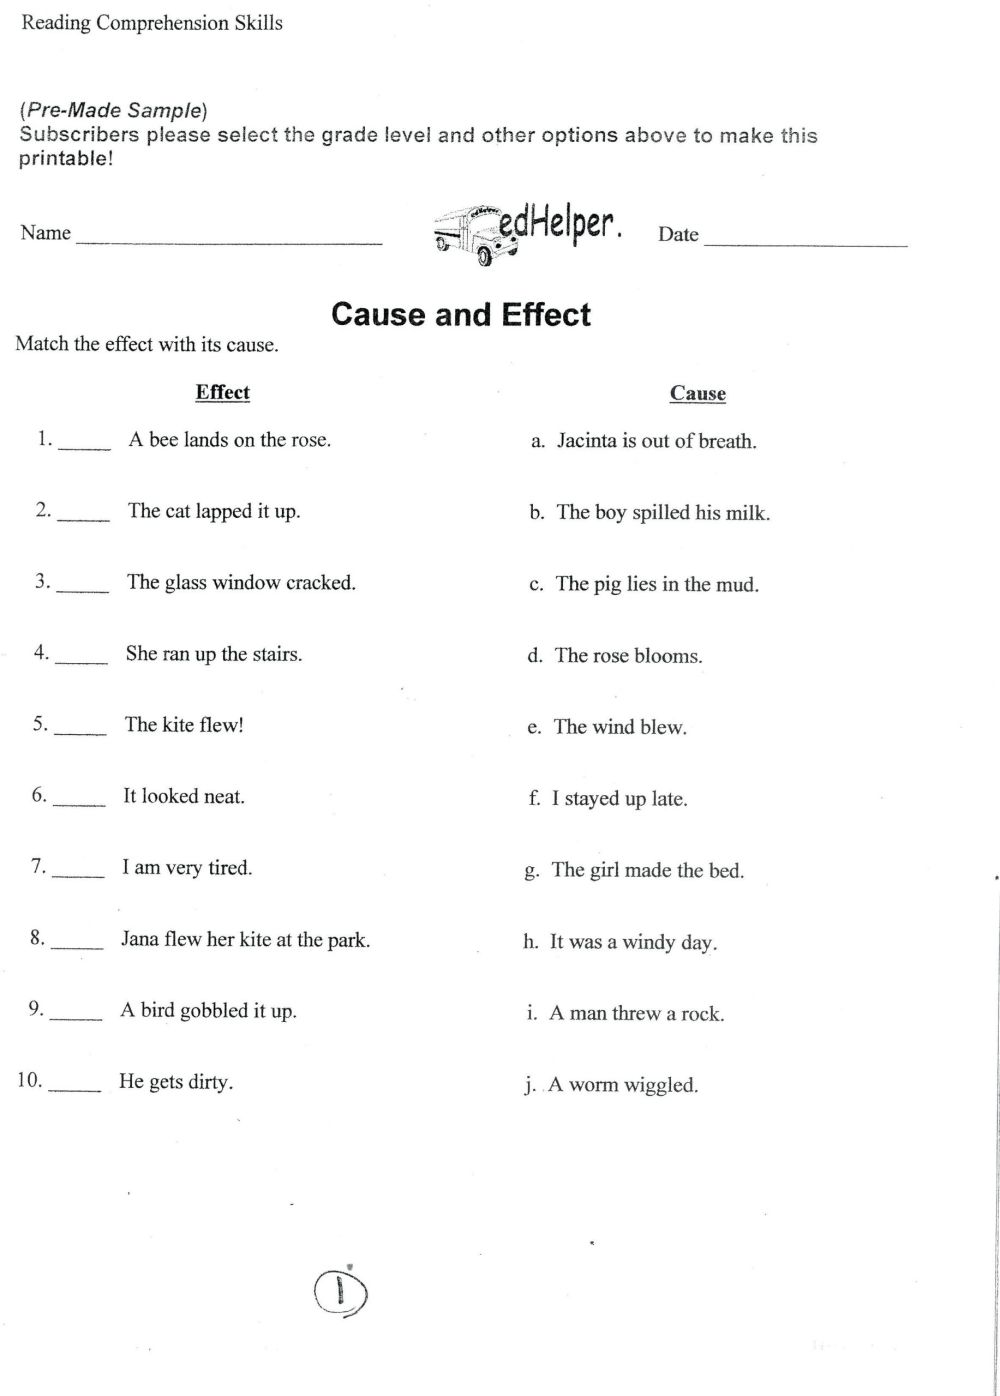 medium resolution of 4 Free Math Worksheets Second Grade 2 Subtraction Subtract 2 Digit Numbers  with Regrouping - apocalomegaproductions.com